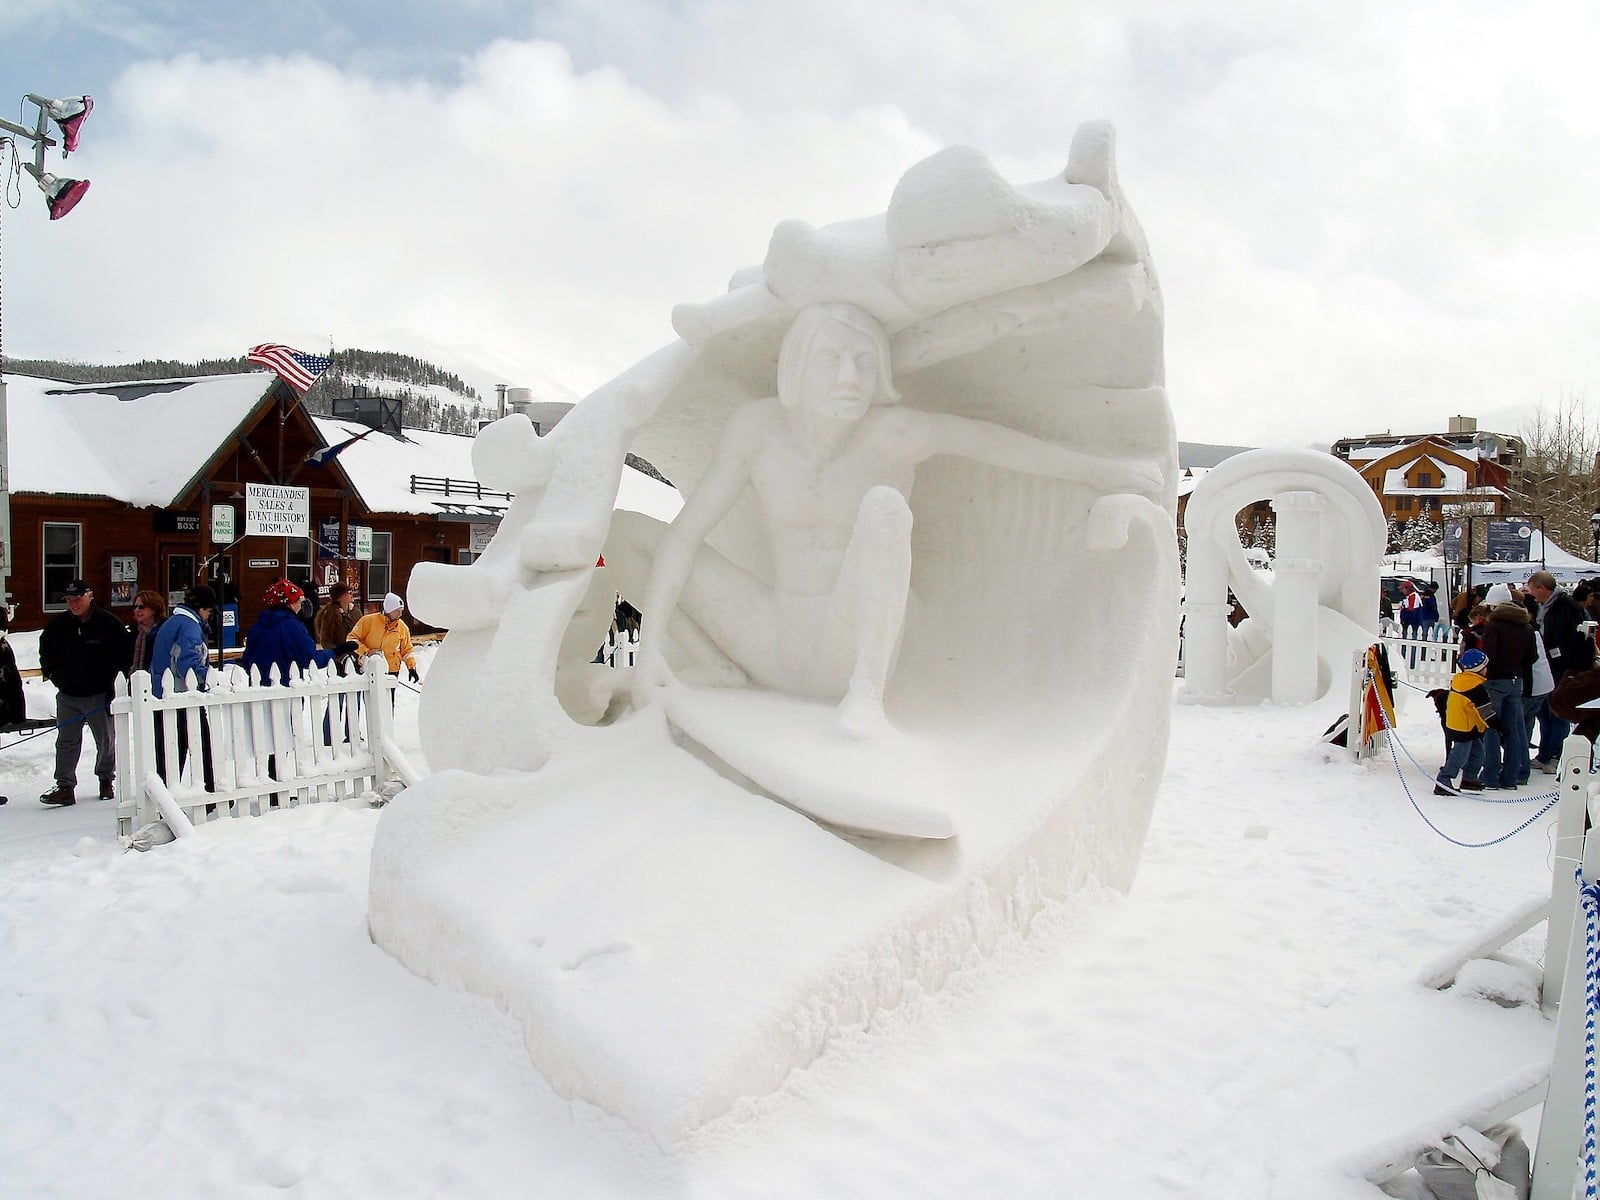 Image of a ice sculptor depicting a person riding a wave